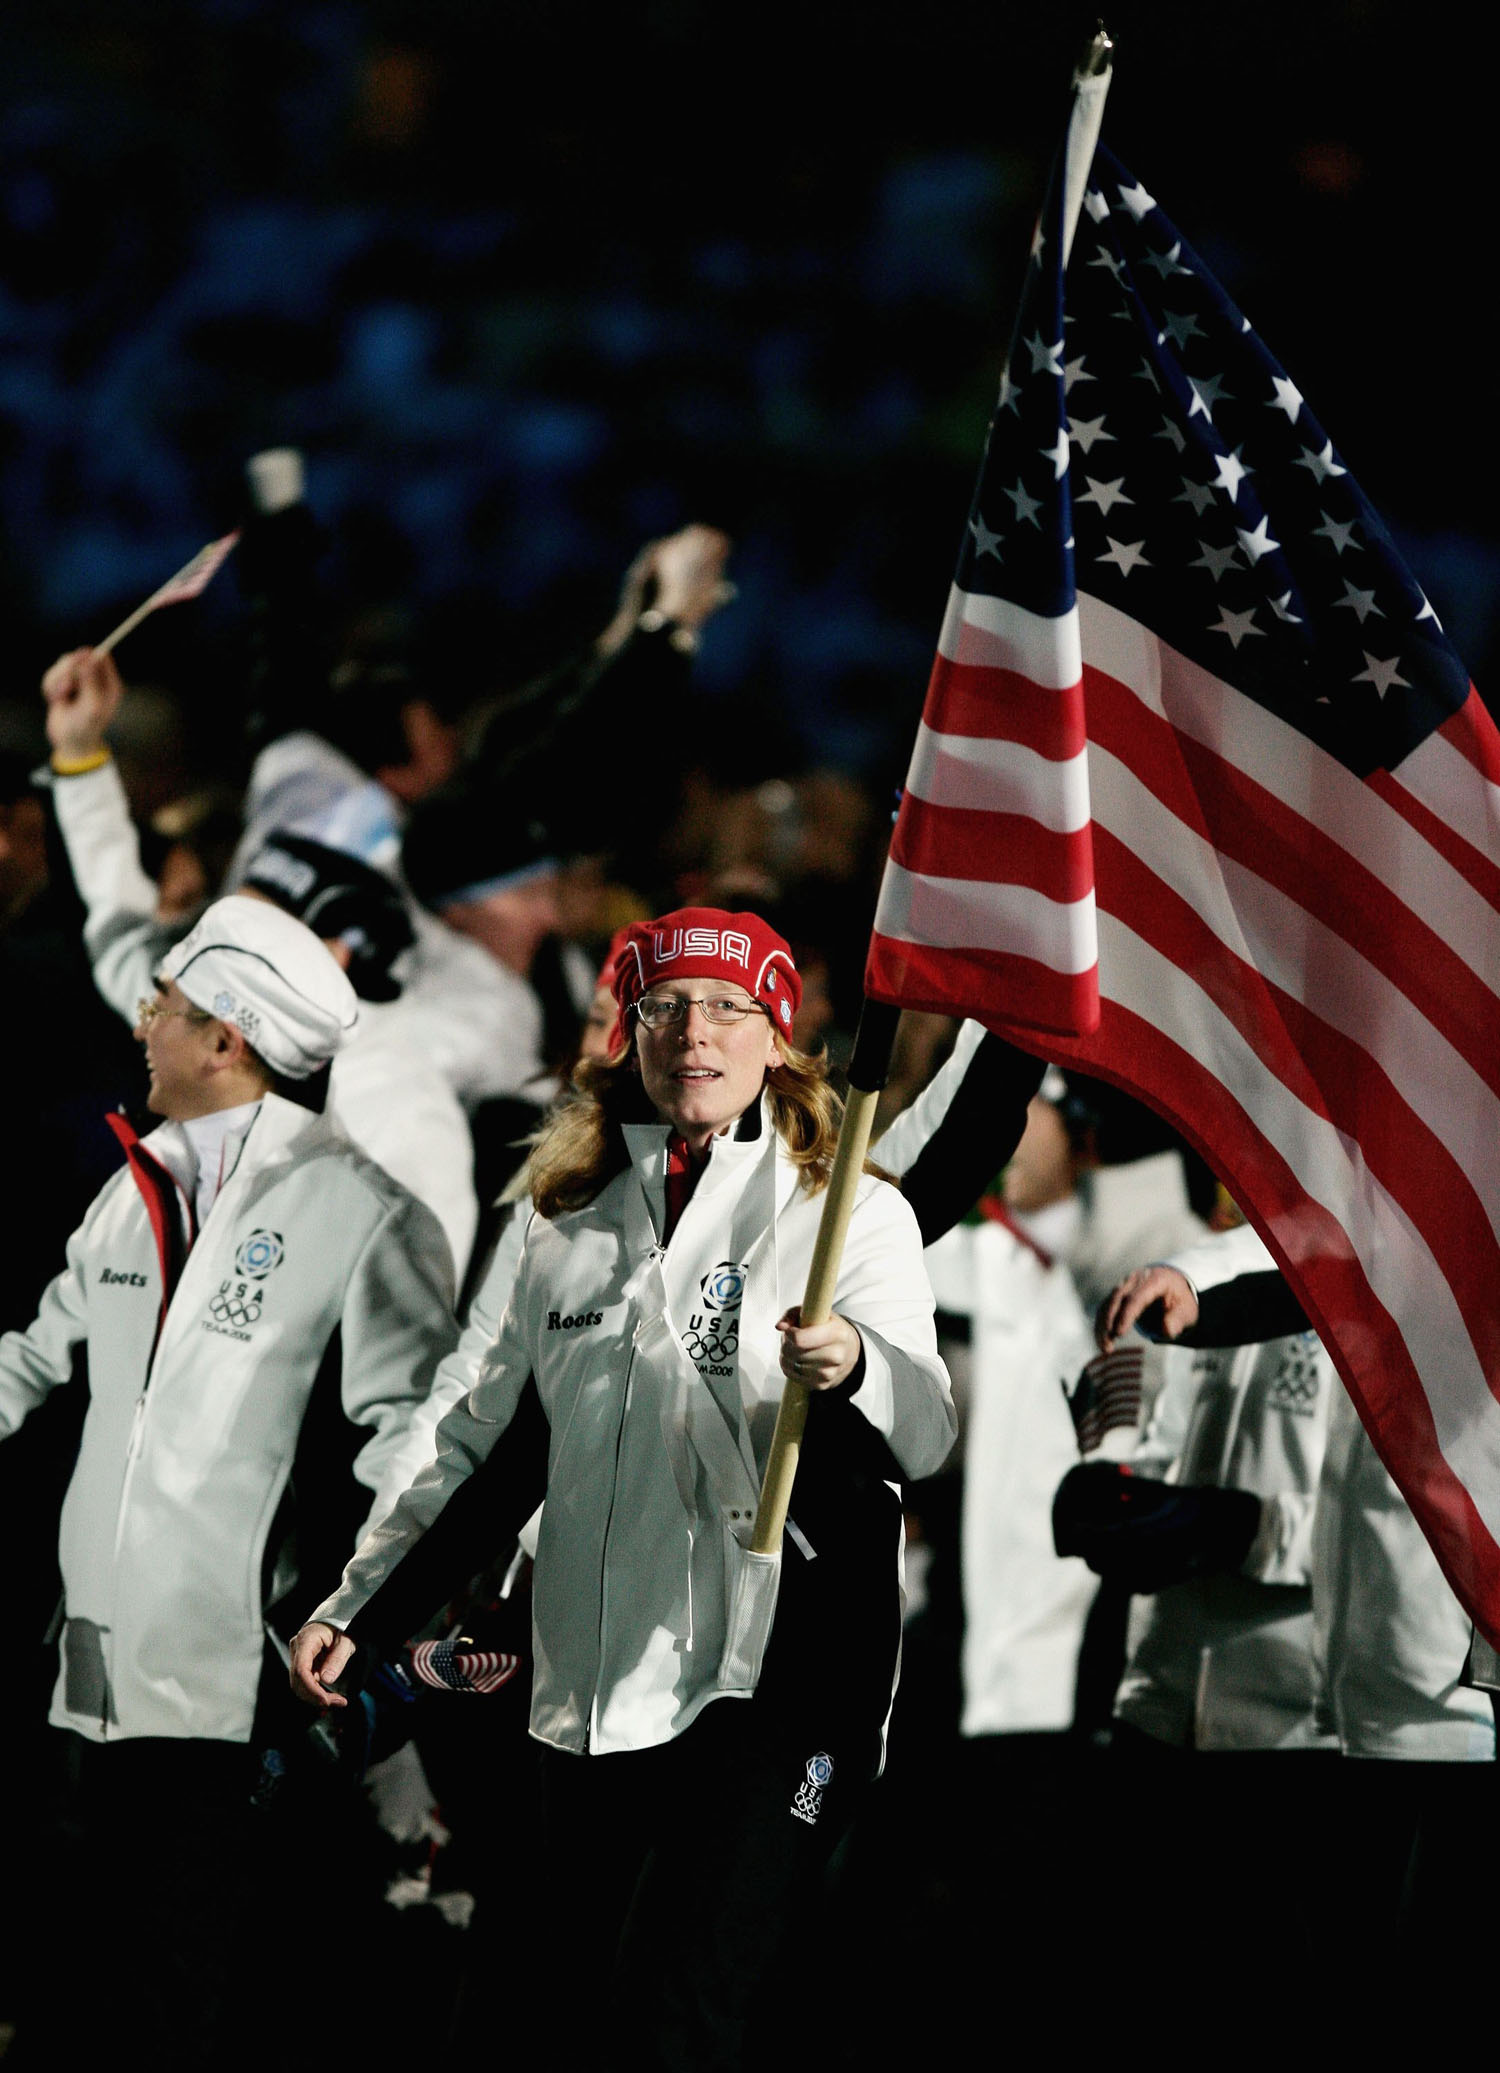 Speed skater Chris Witty carries the US flag as she and her teammates attend the opening ceremony of the Turin Winter Olympic Games on Feb. 10, 2006.